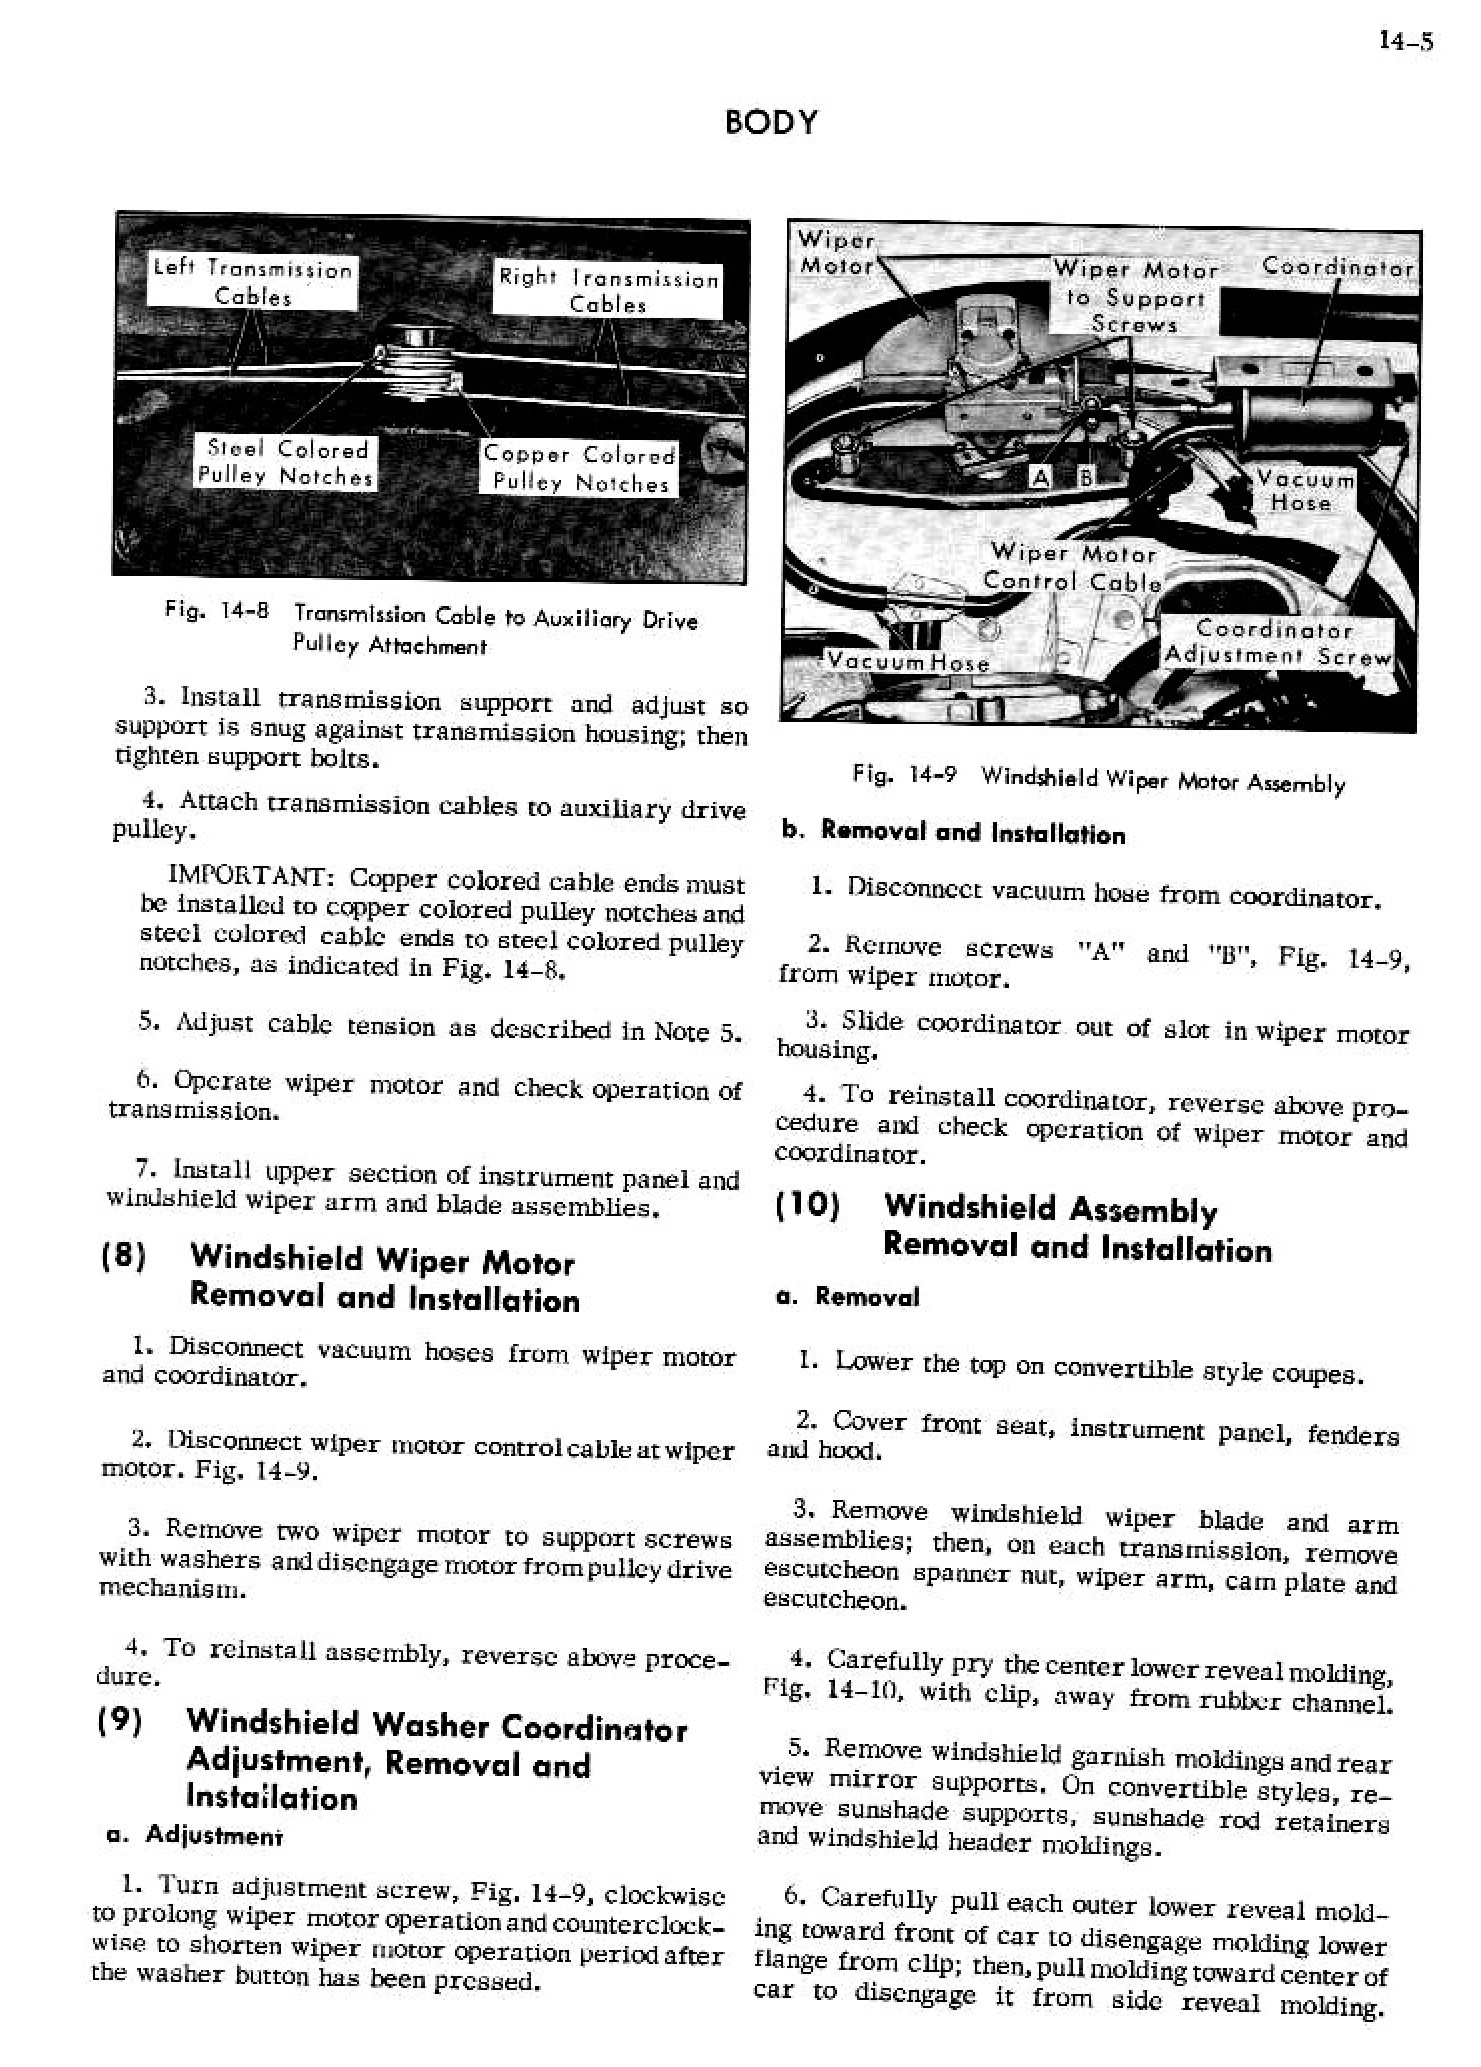 1956 Cadillac Shop Manual- Body Page 5 of 87